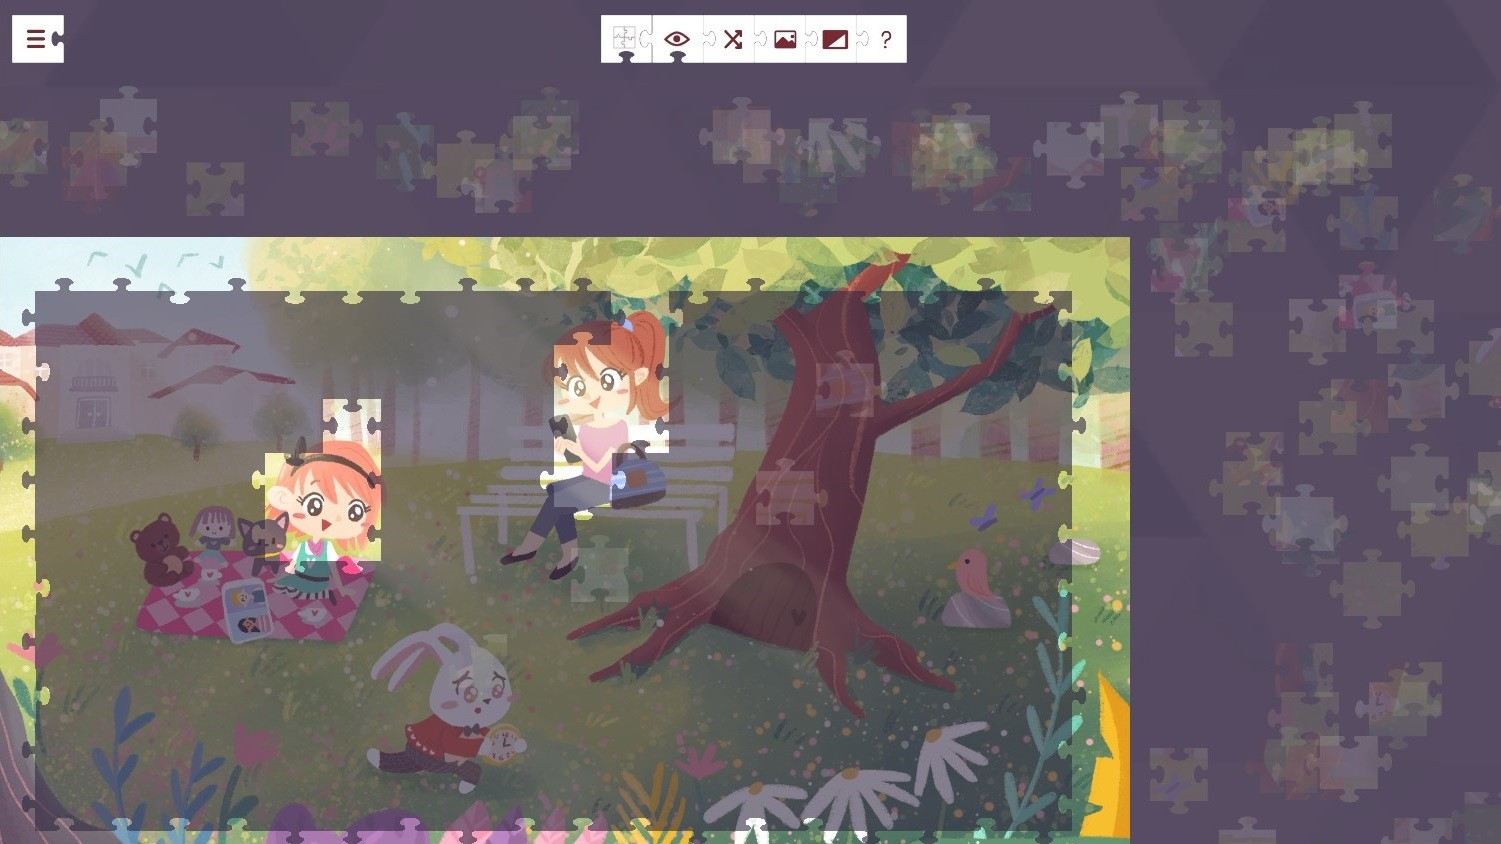 Alice in Wonderland - a jigsaw puzzle tale screenshot